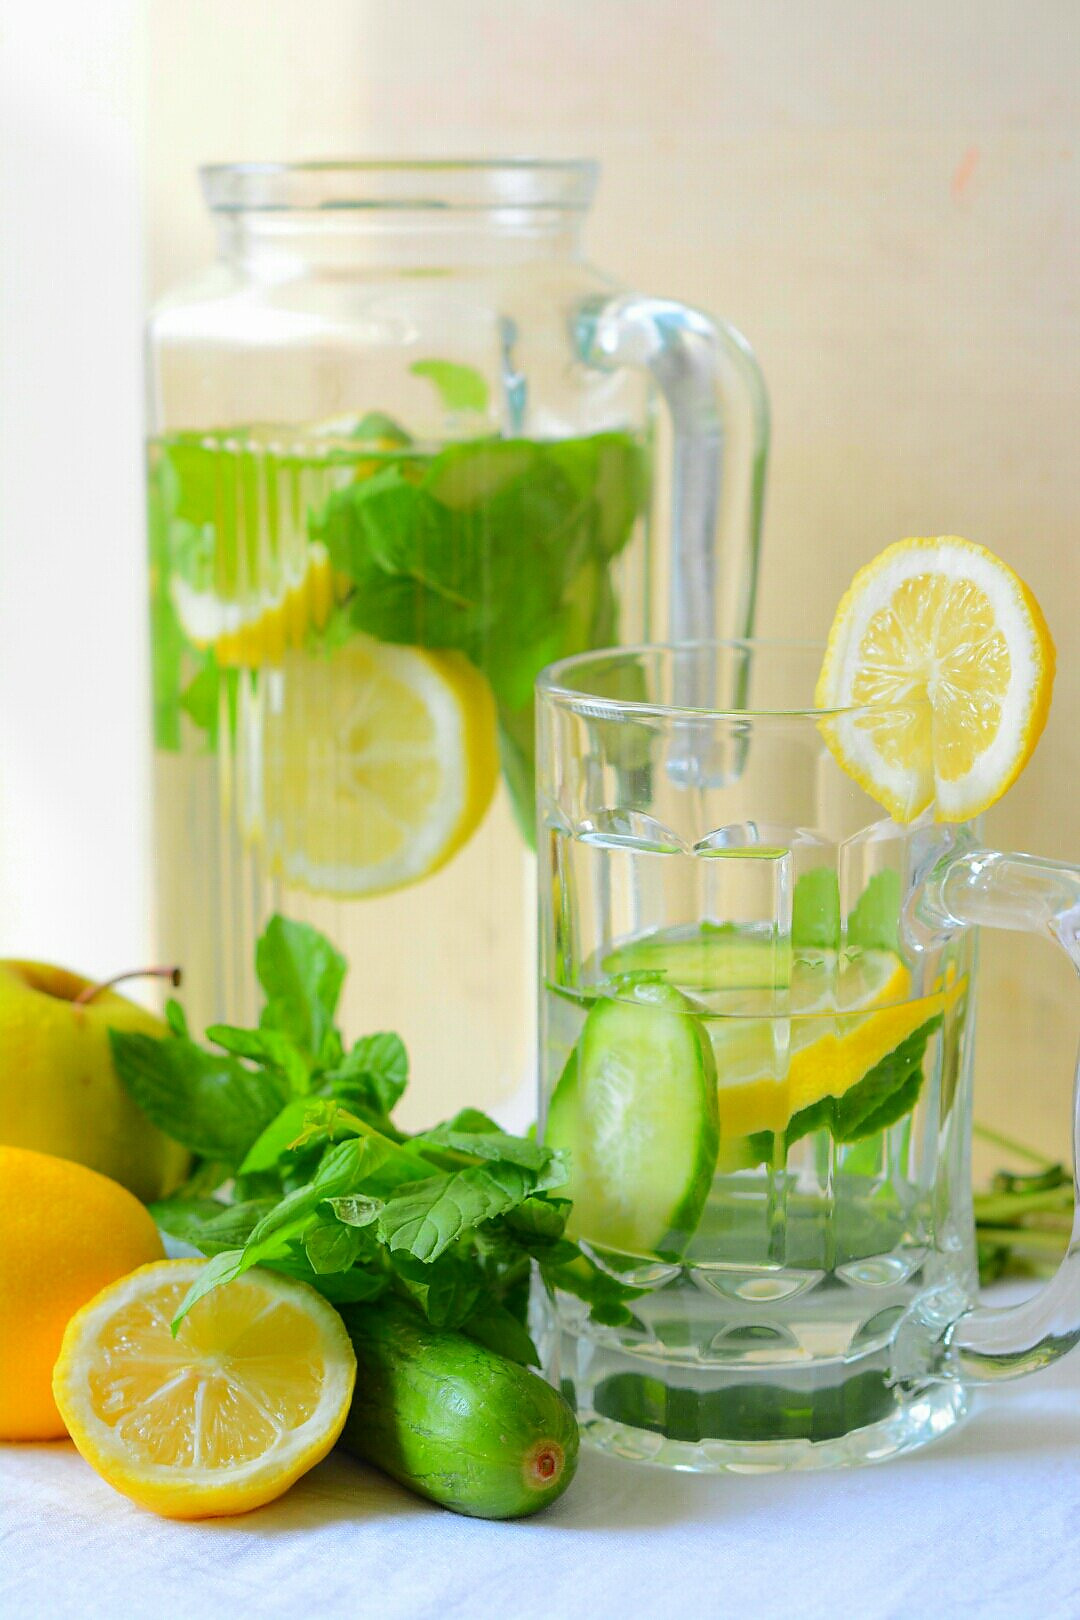 Detox water for fatloss, weightloss ,glowing skin and Keeps you fresh